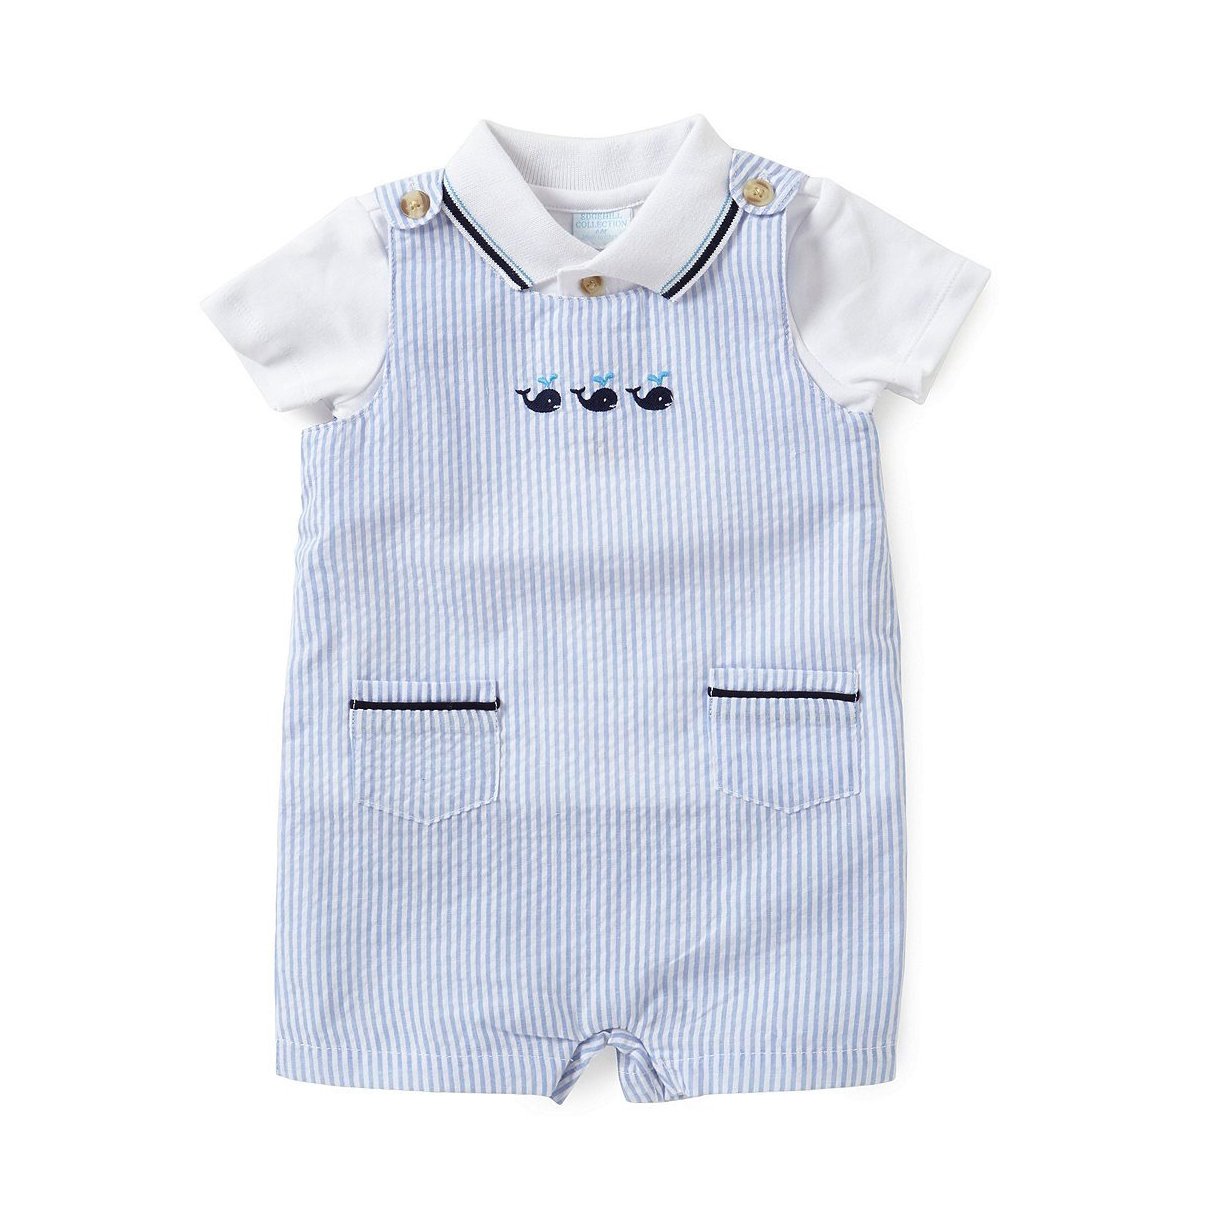 Edgehill Collection Polo Shirt & Whale-Embroidered Striped Seersucker Shortall Set